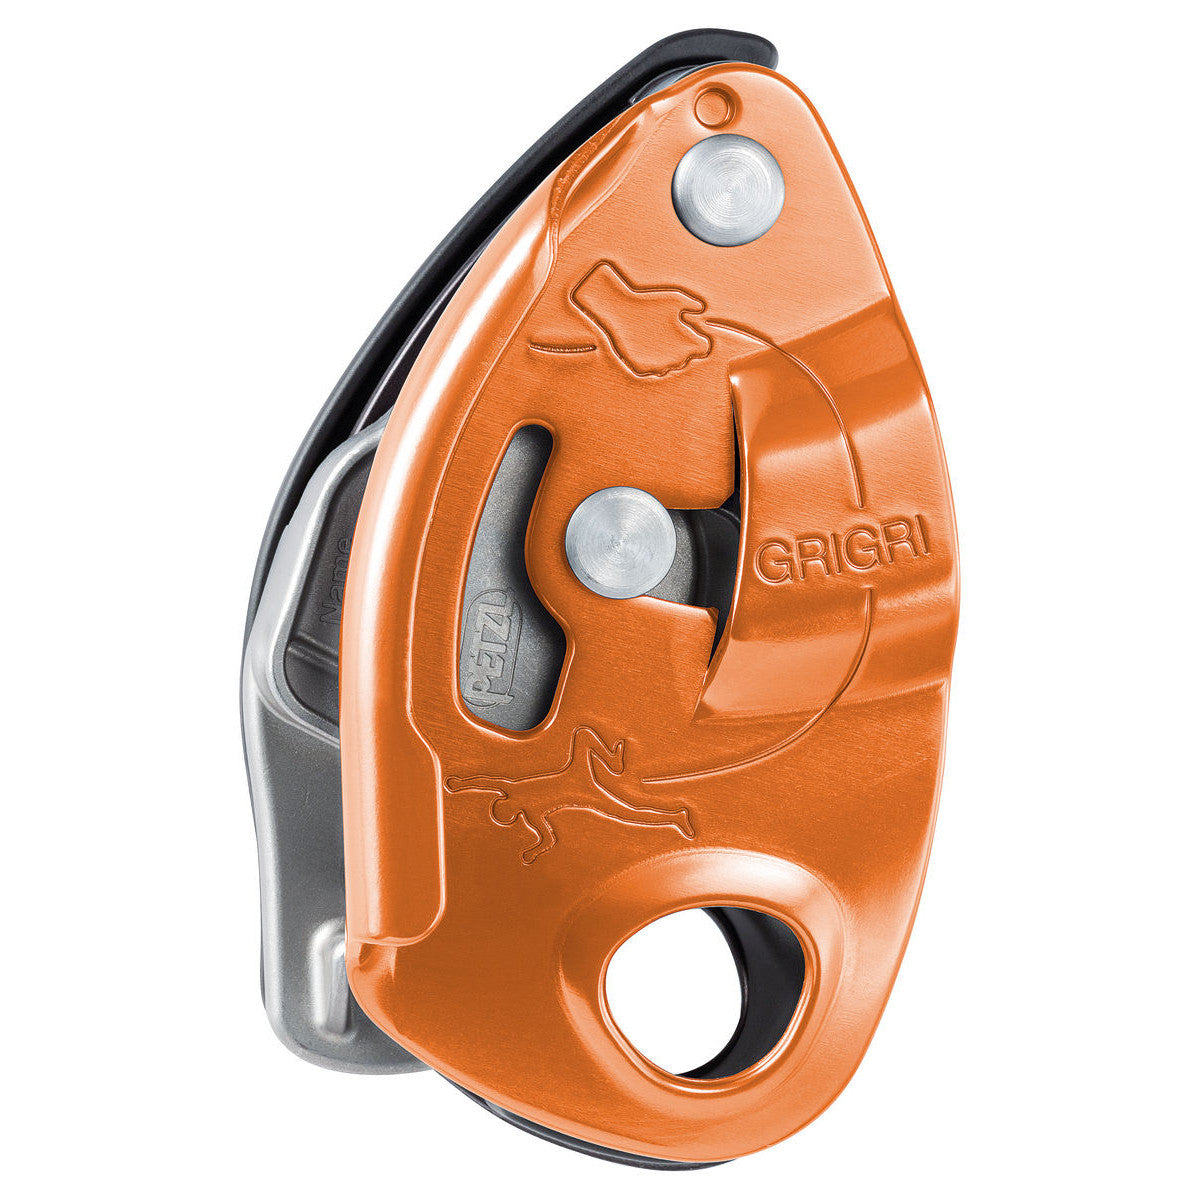 Petzl Grigri belay device, showing side view in orange colour